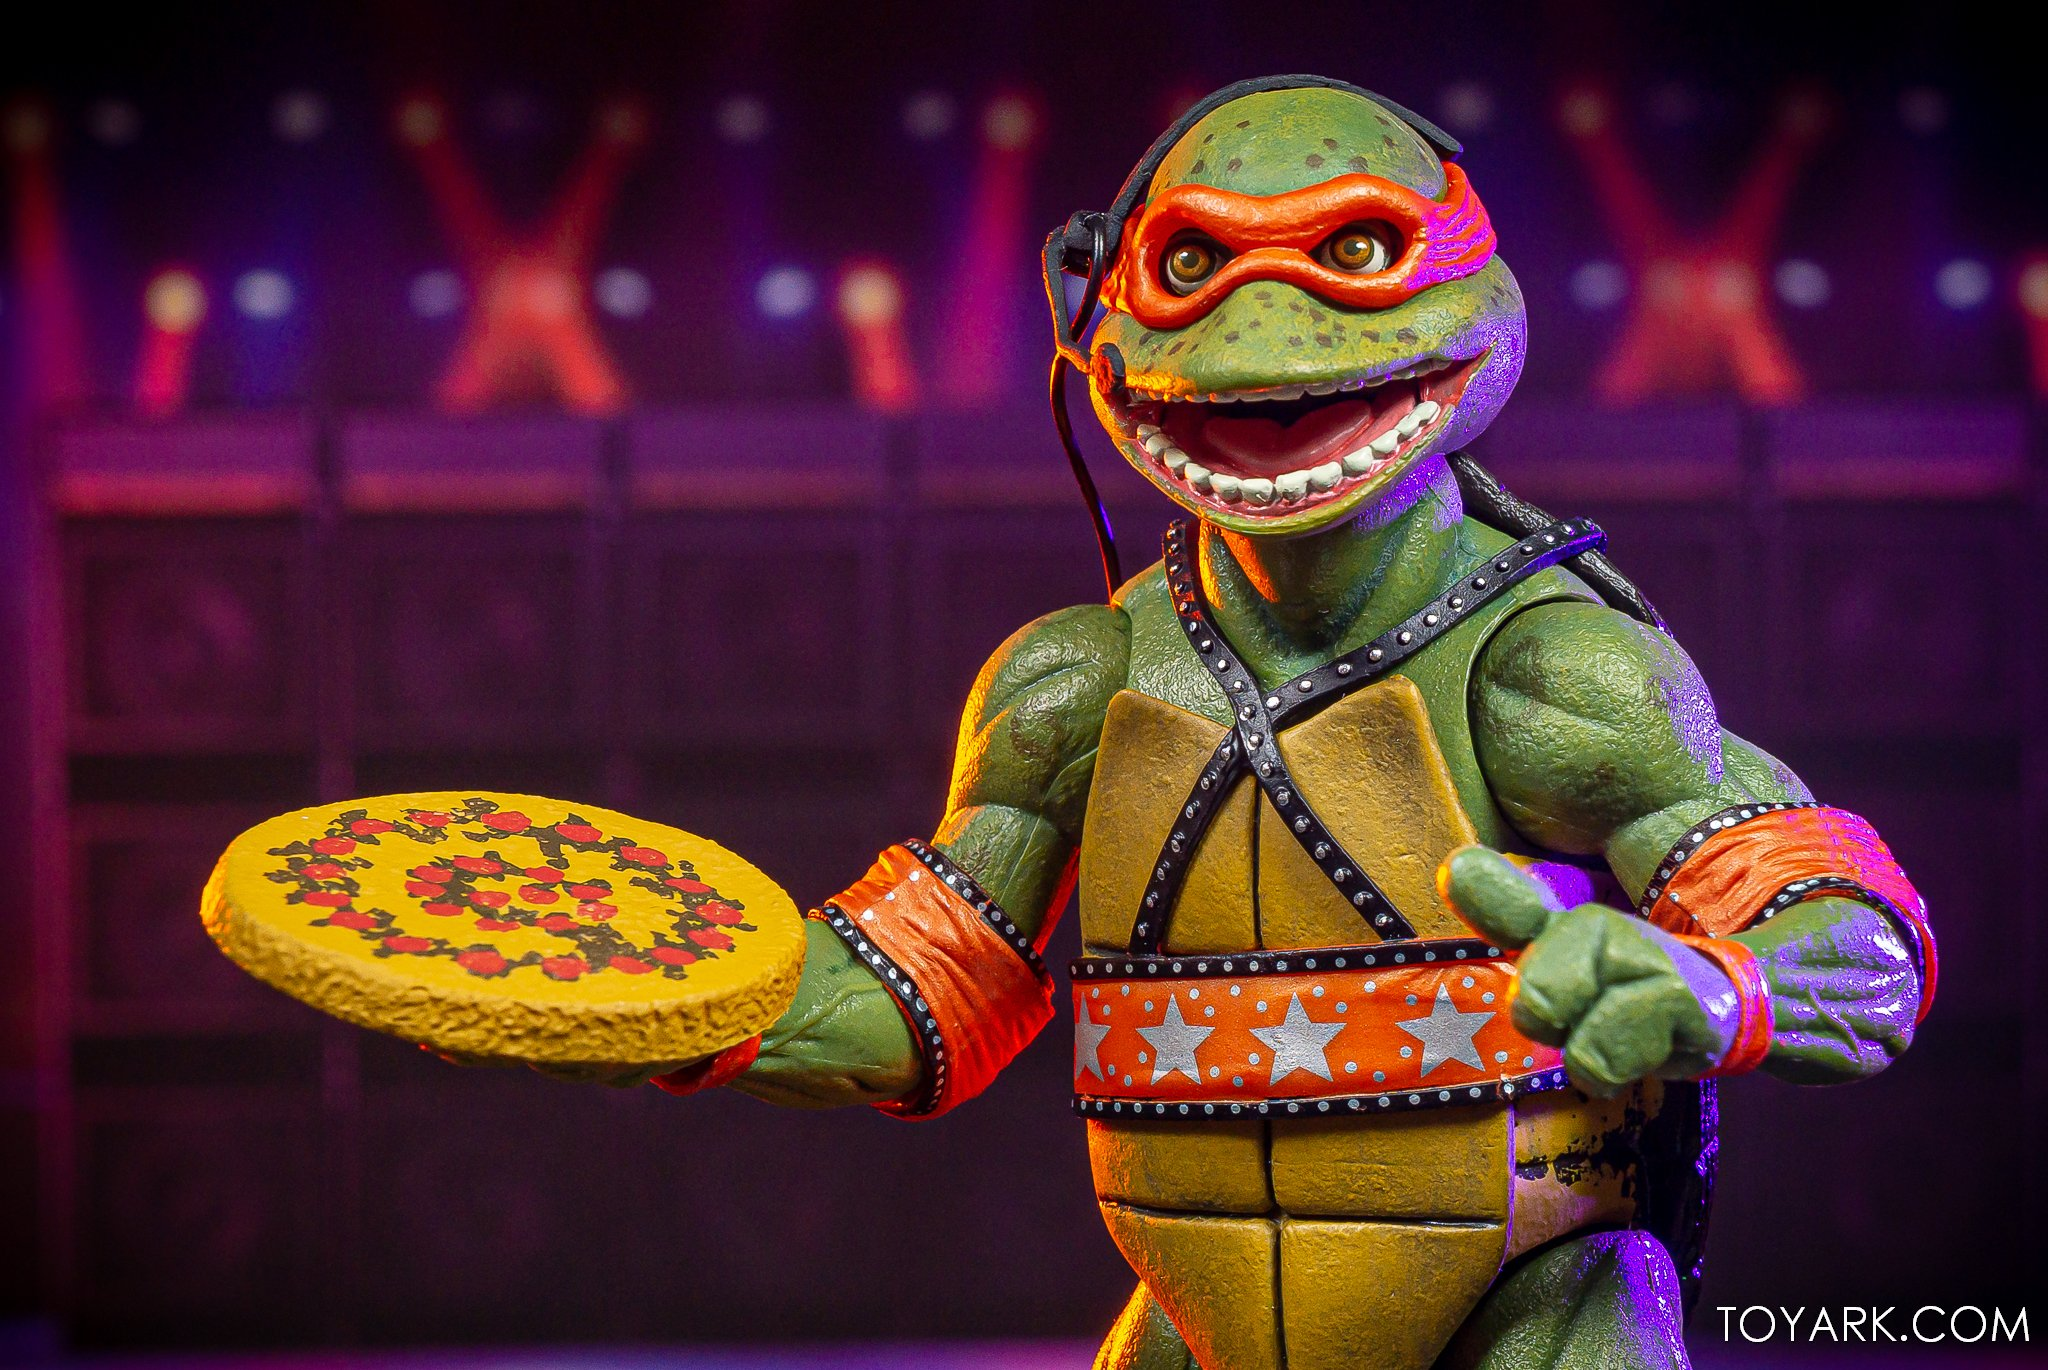 https://news.toyark.com/wp-content/uploads/sites/4/2020/07/SDCC-2020-TMNT-Musical-Mutagen-Tour-059.jpg